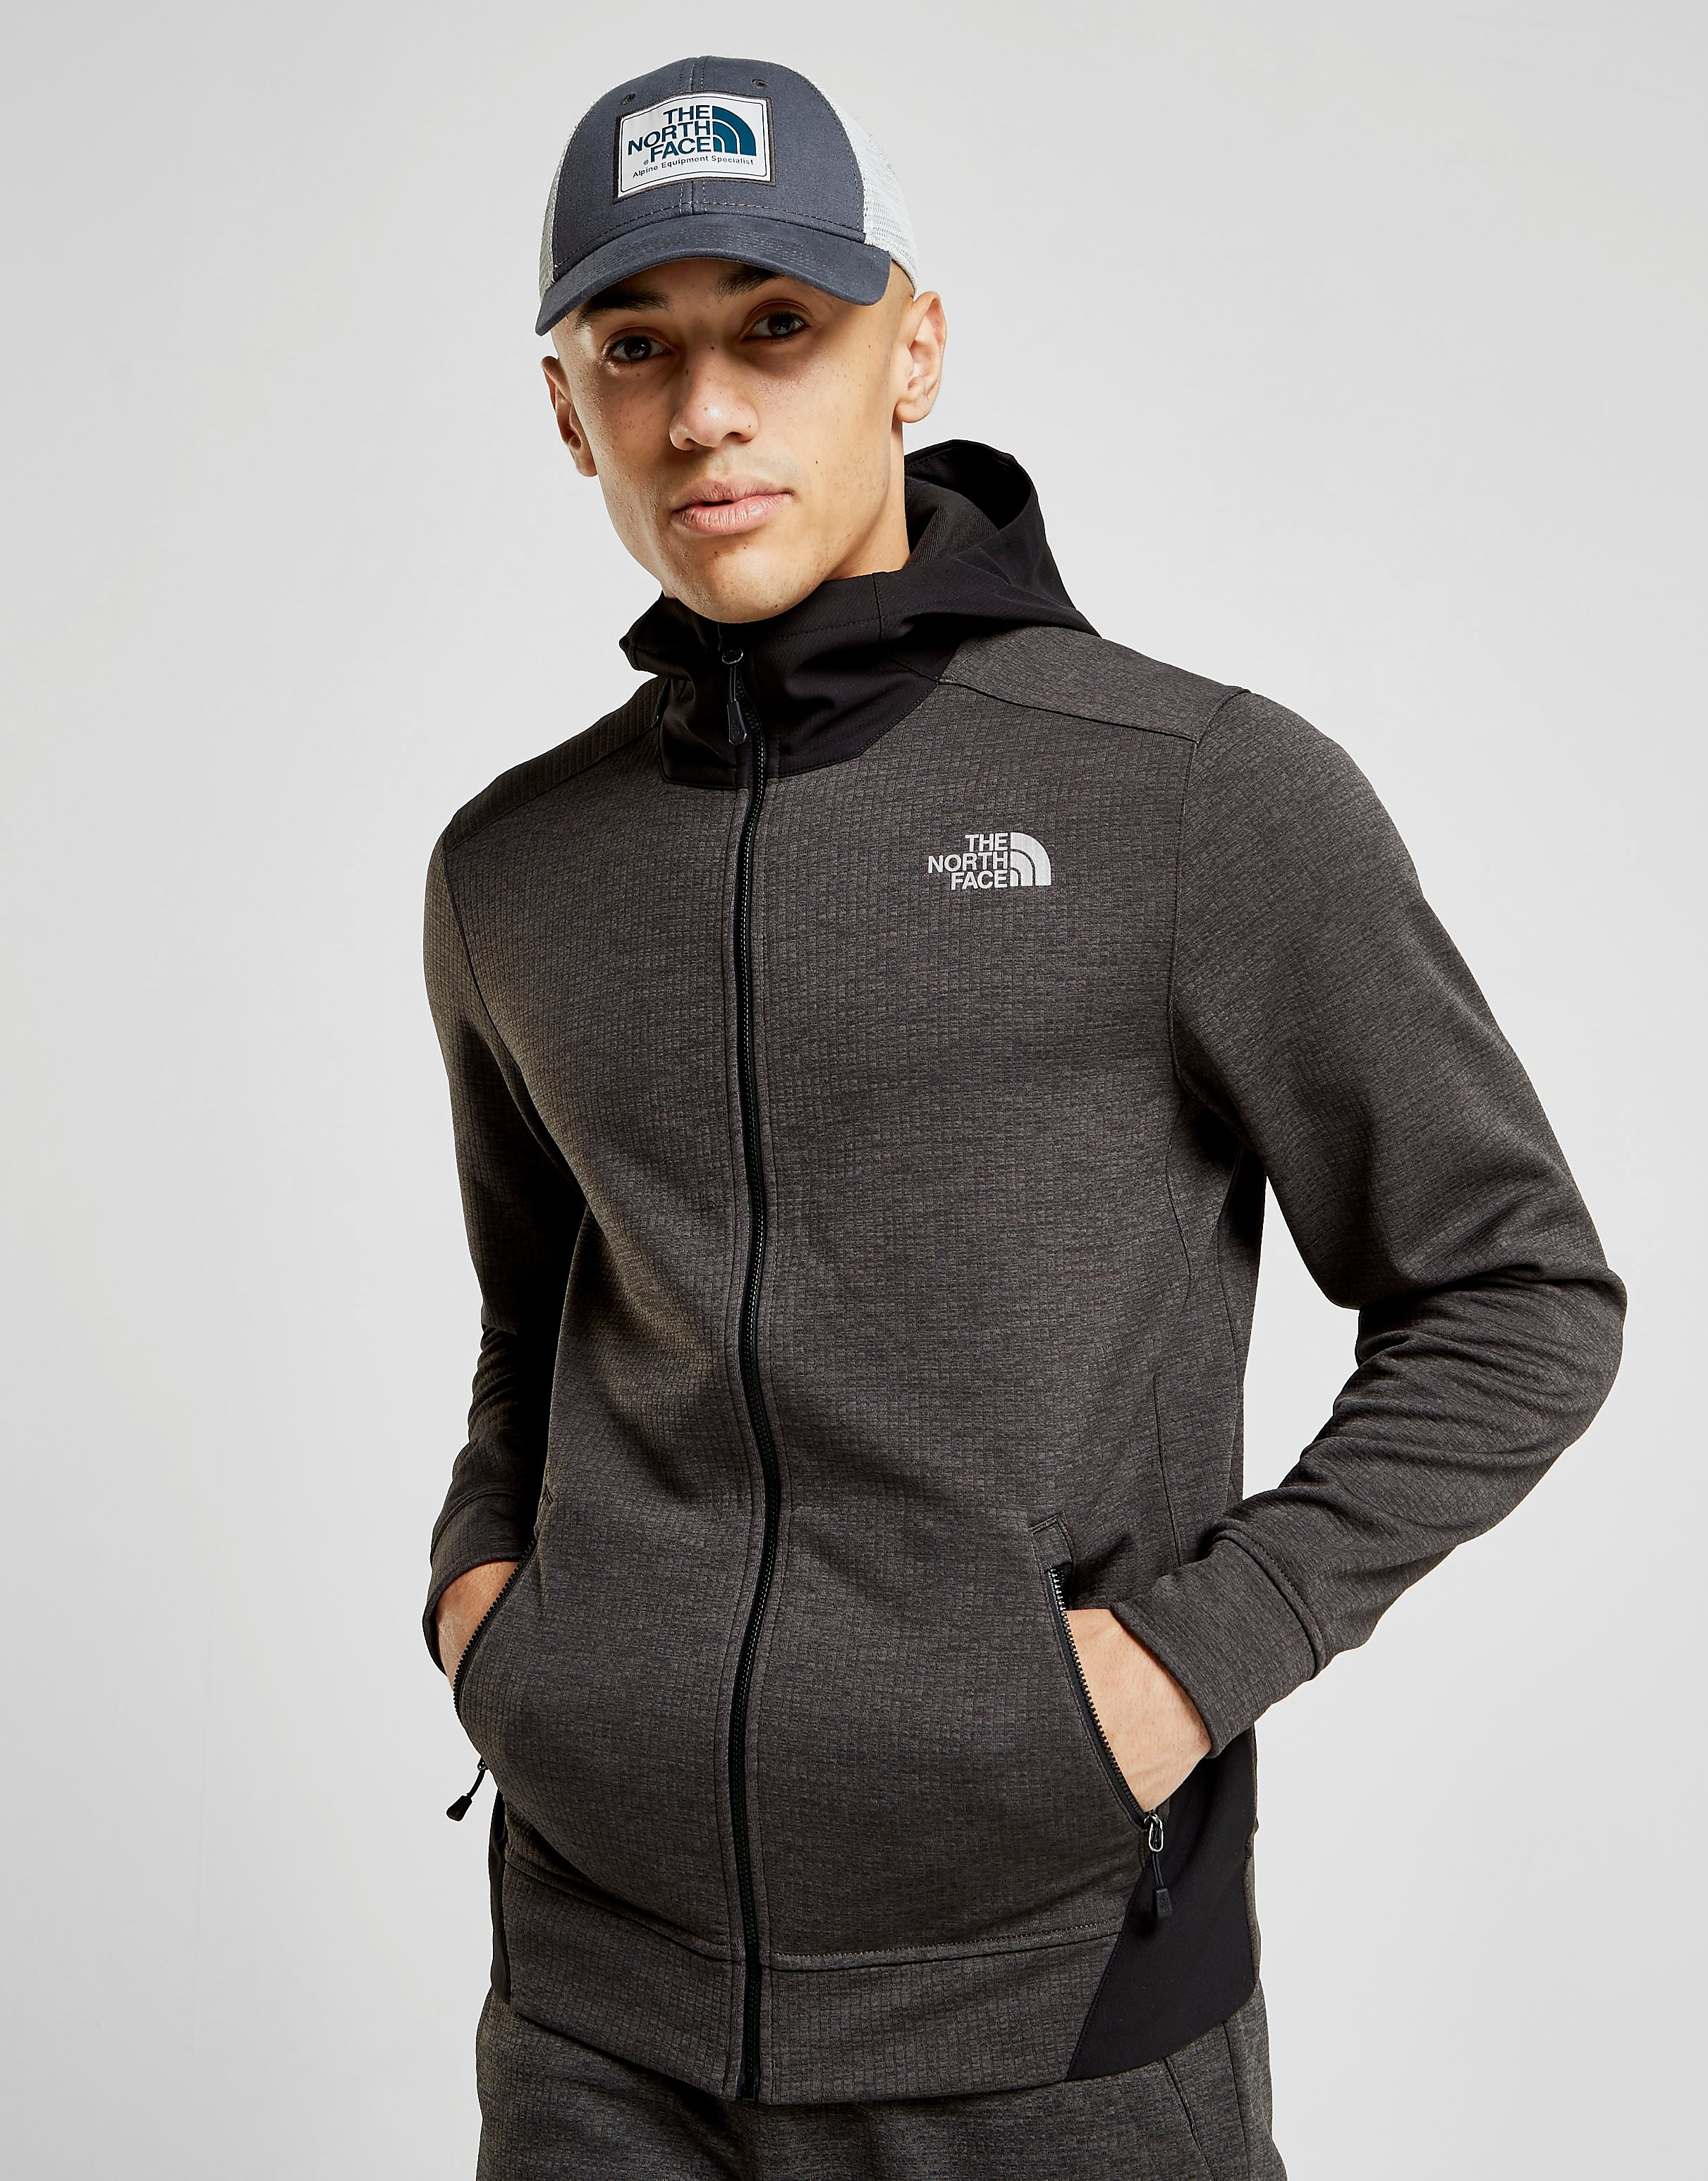 The North Face Tenacious Grid Full Zip Hoodie